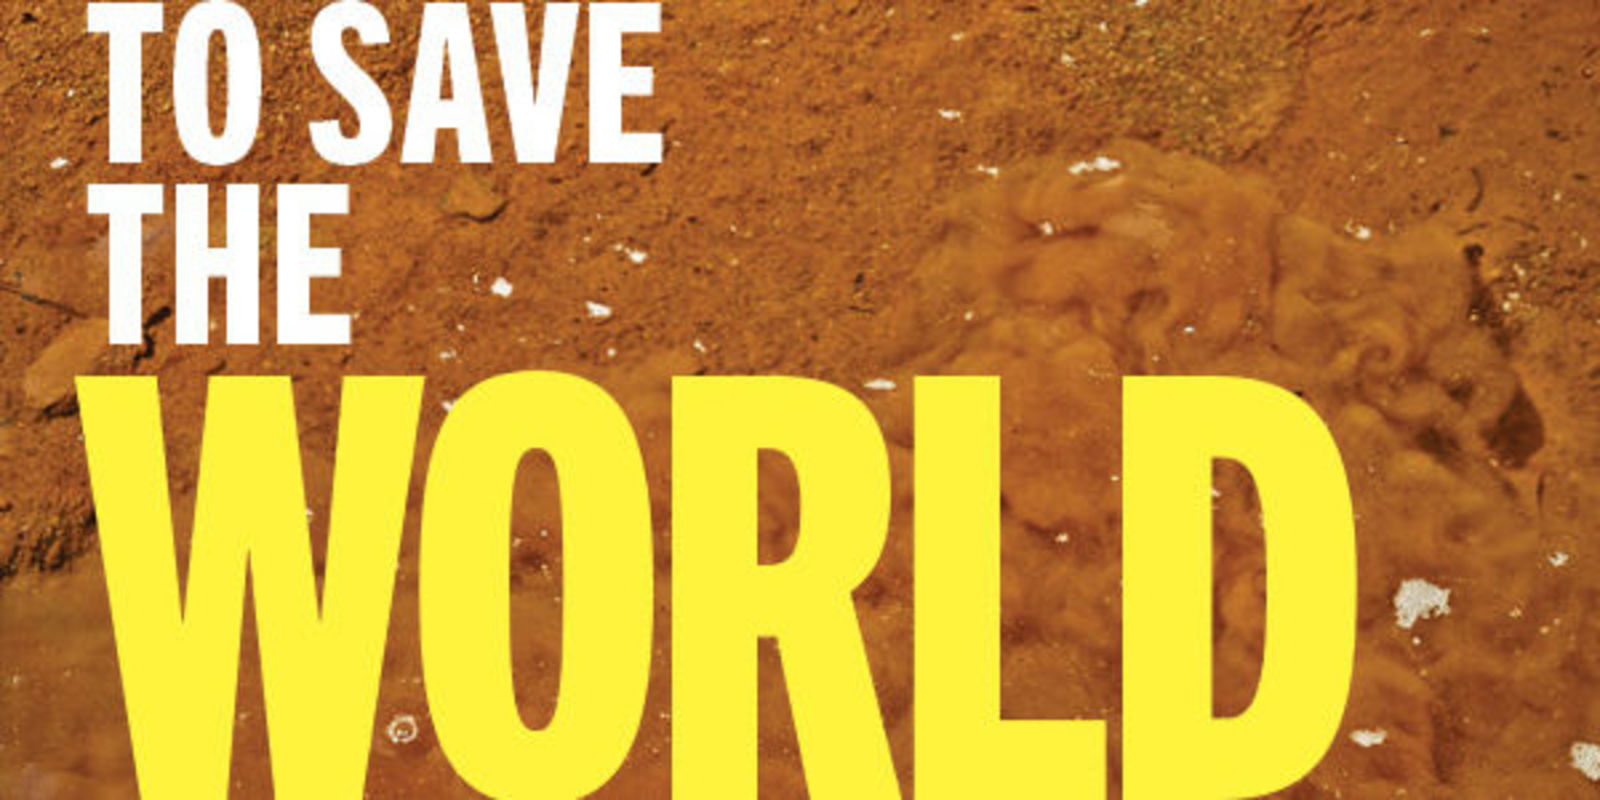 6 Simple Ways To Save The World